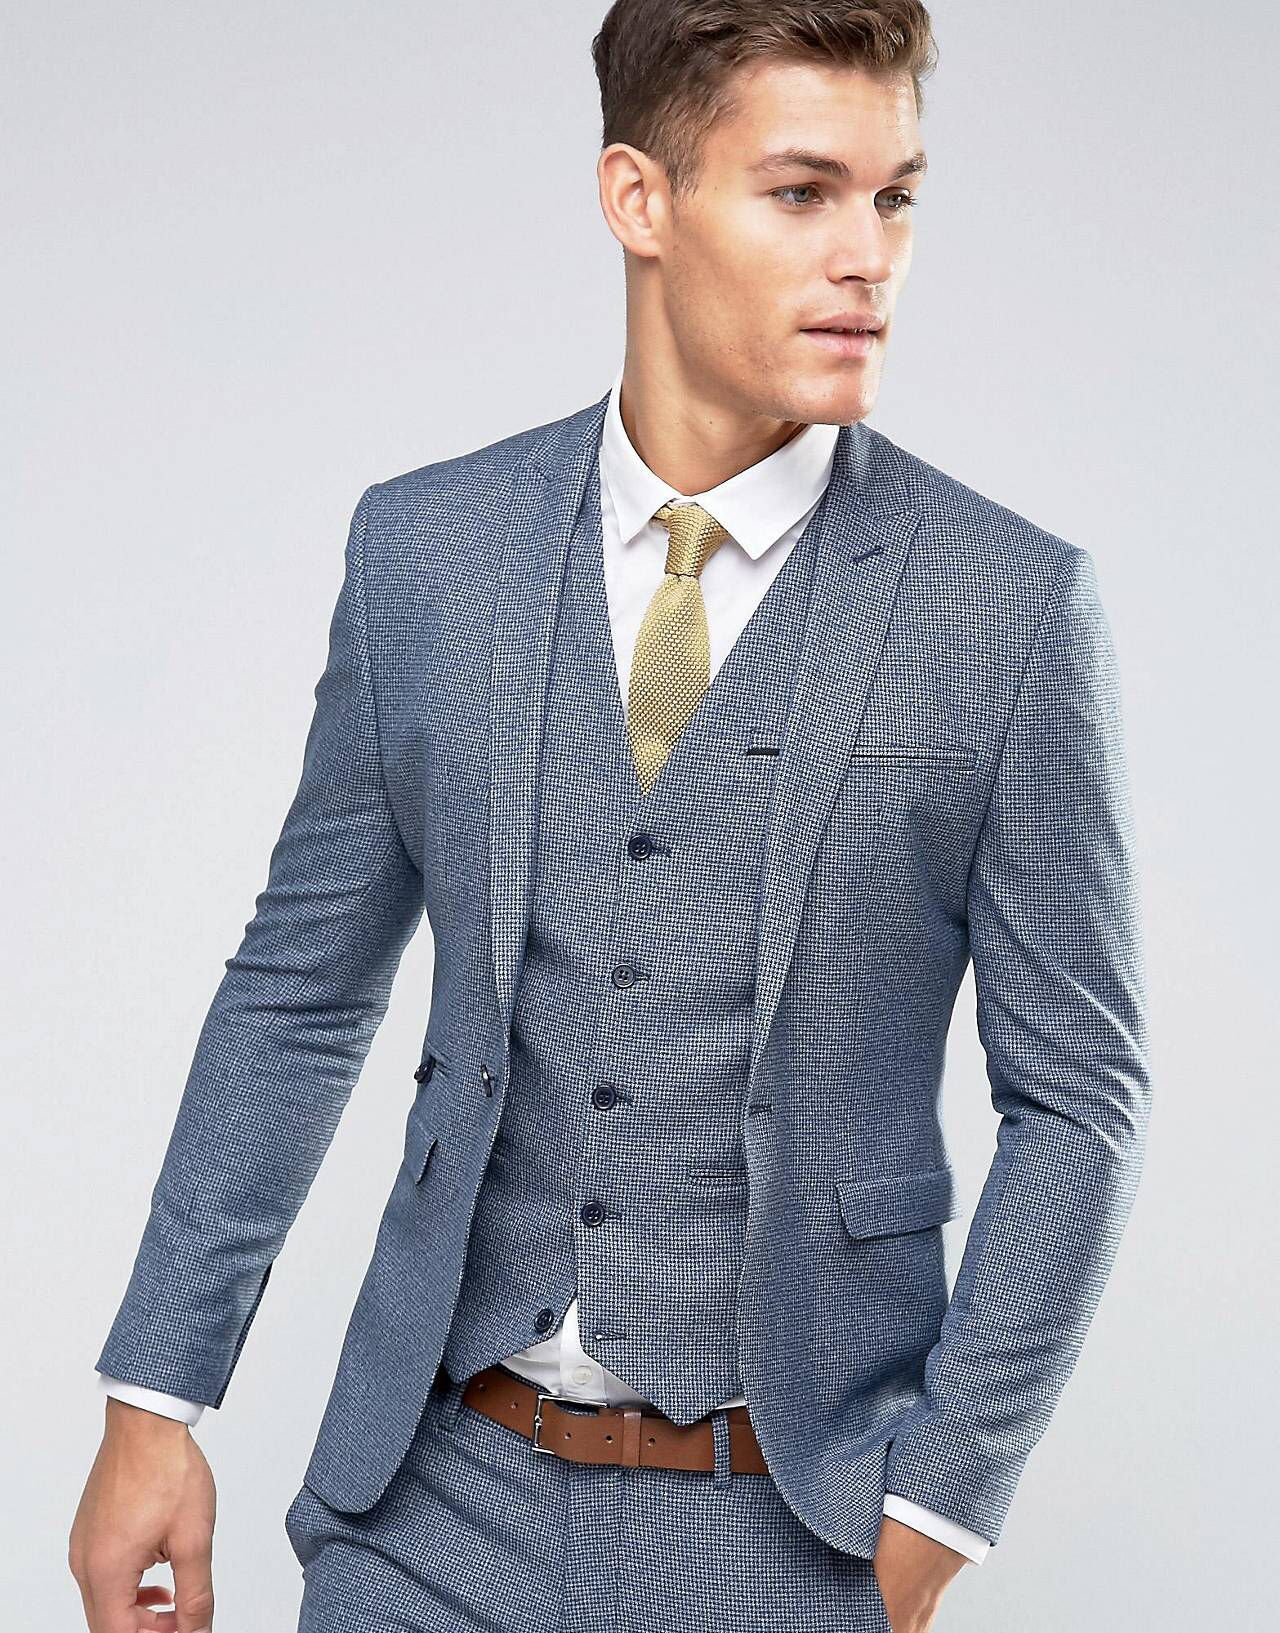 LOVE this from ASOS! | Moda masculina | Pinterest | Anzüge, Anzug ...